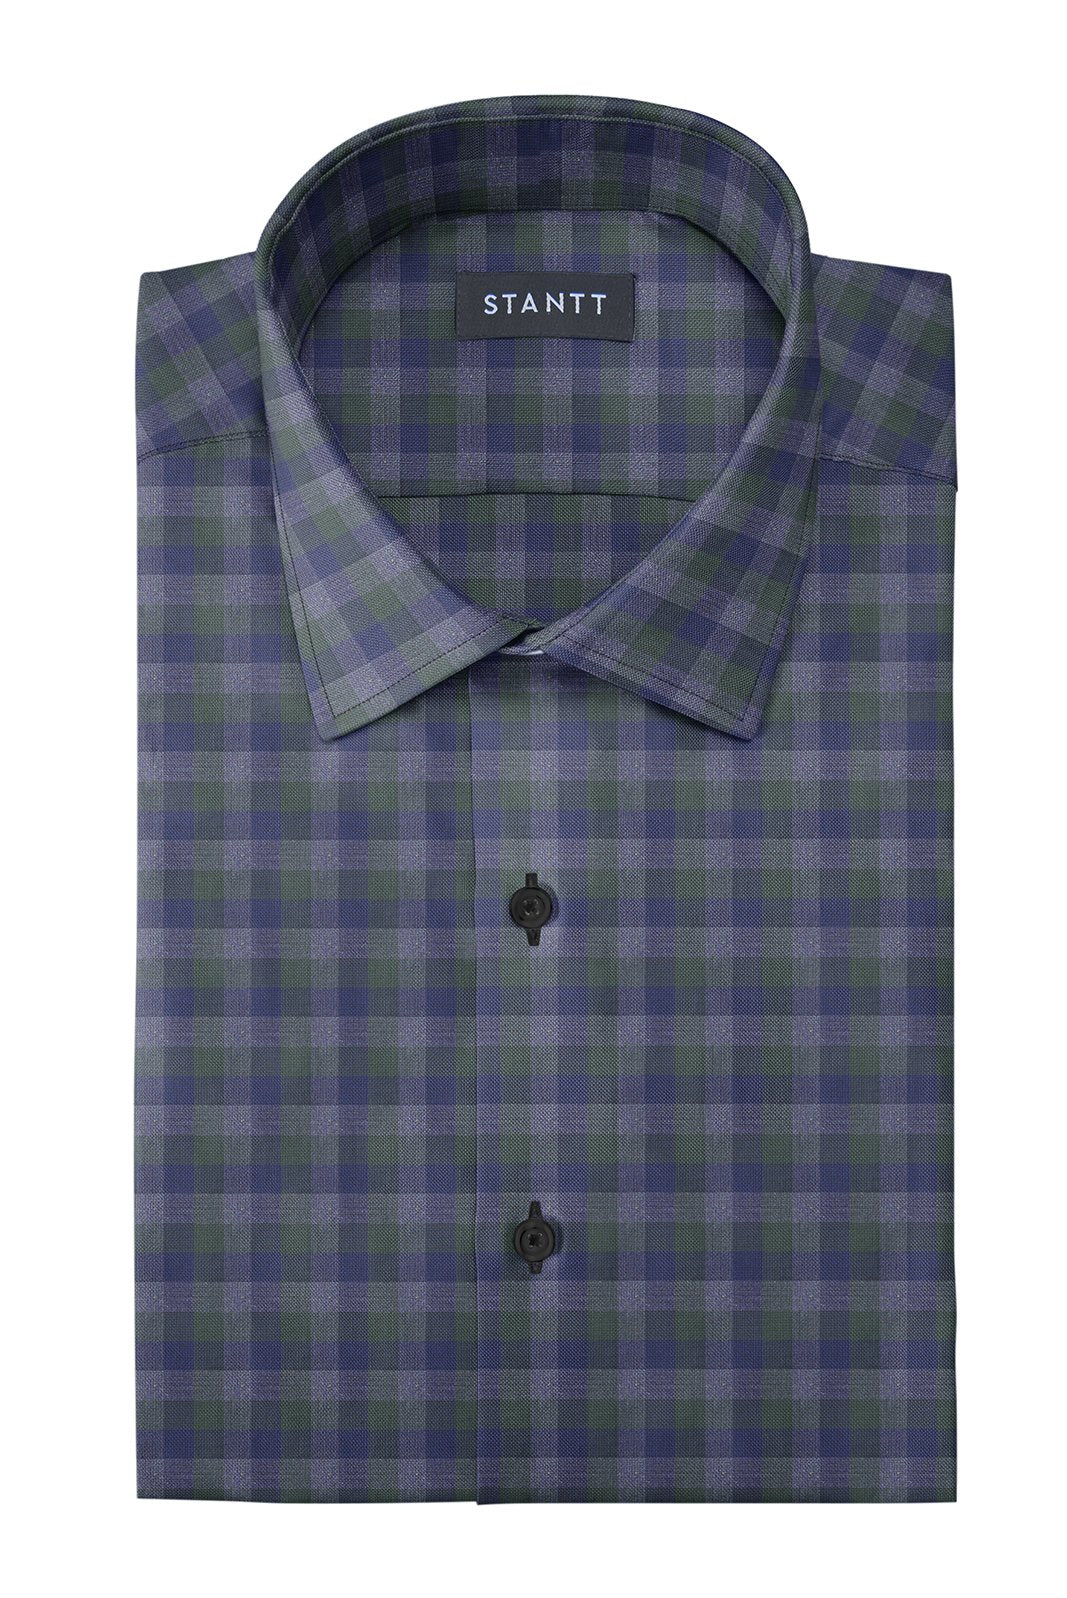 Shirts Hunter Green Charcoal Multi Check Button Up Stantt